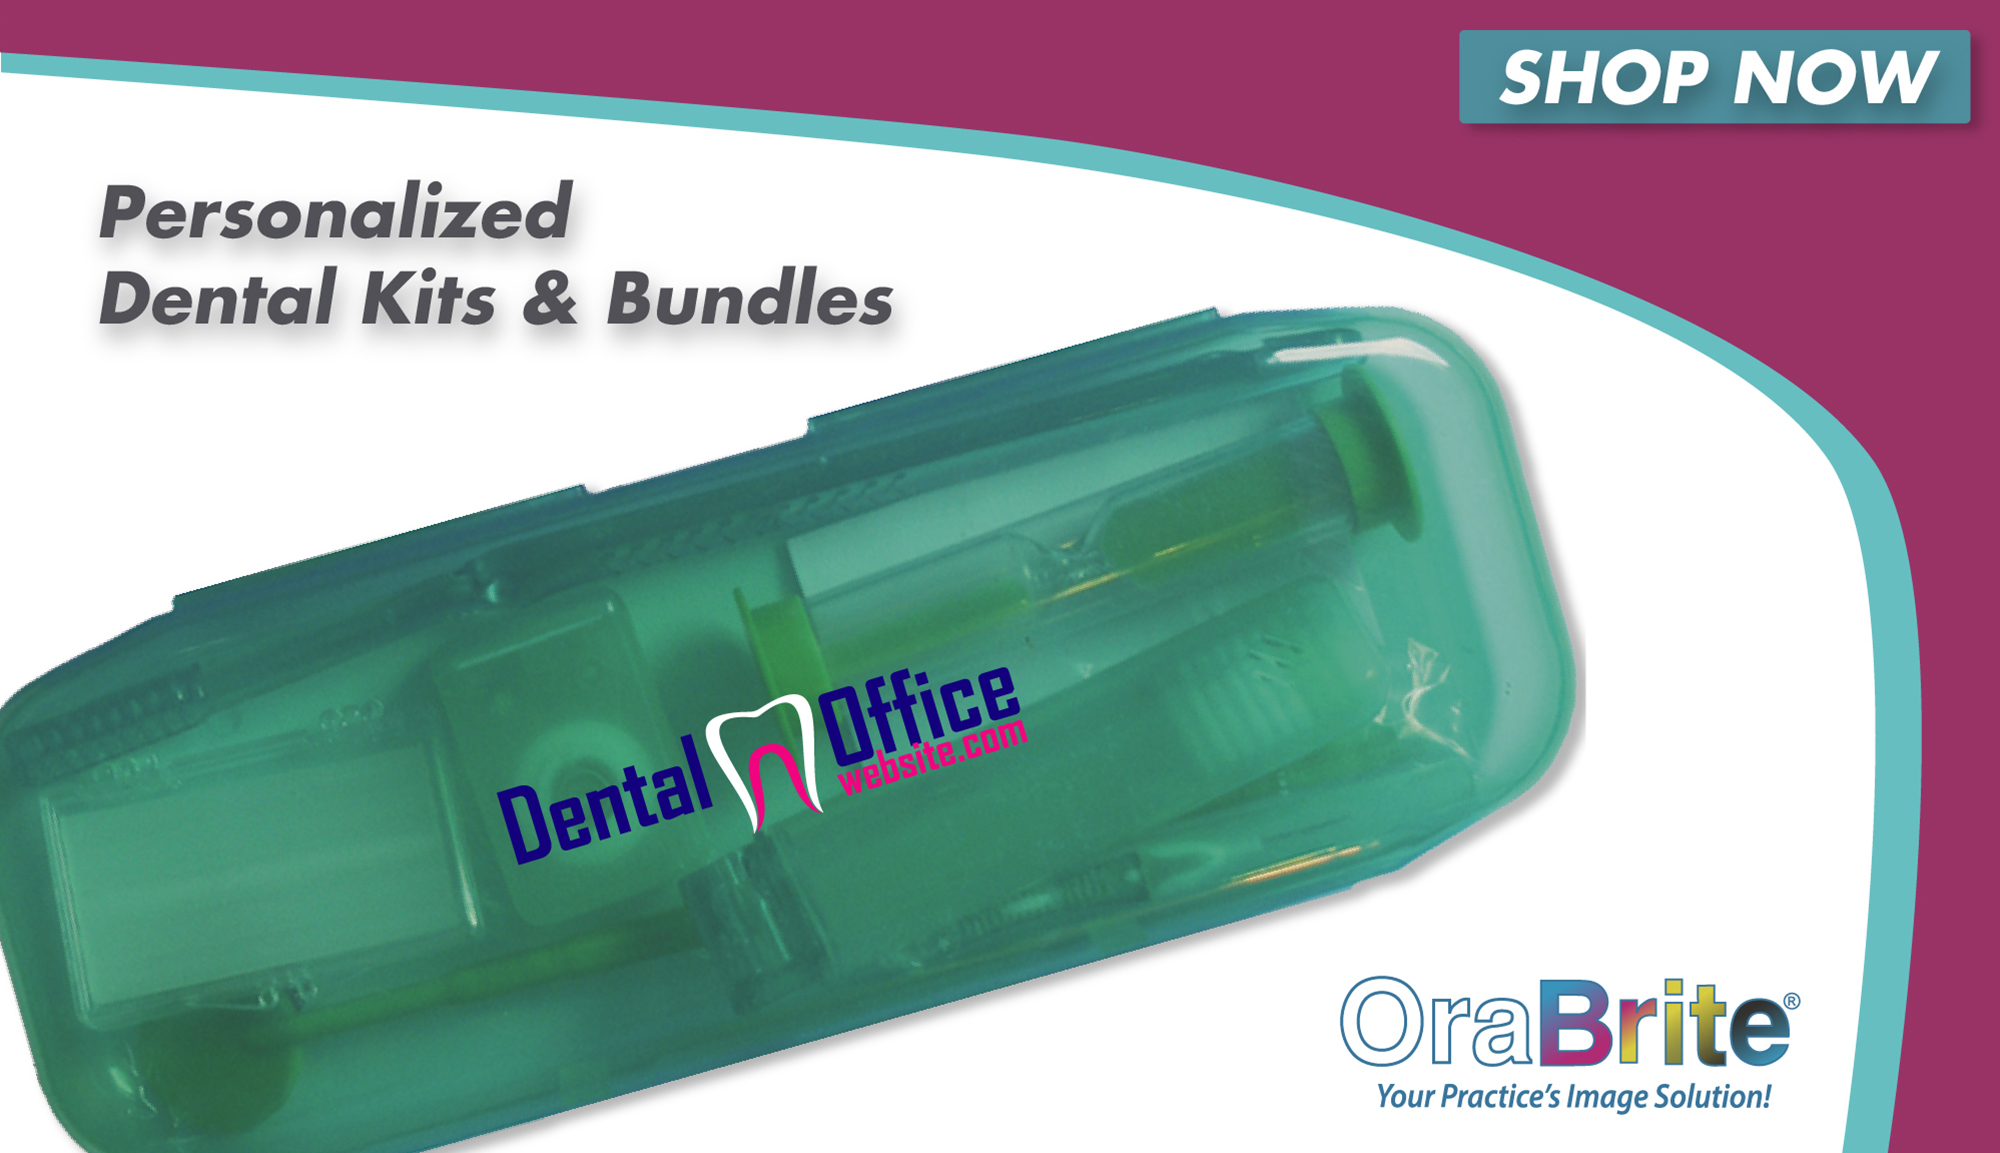 Personalized Dental Kits & Bundles